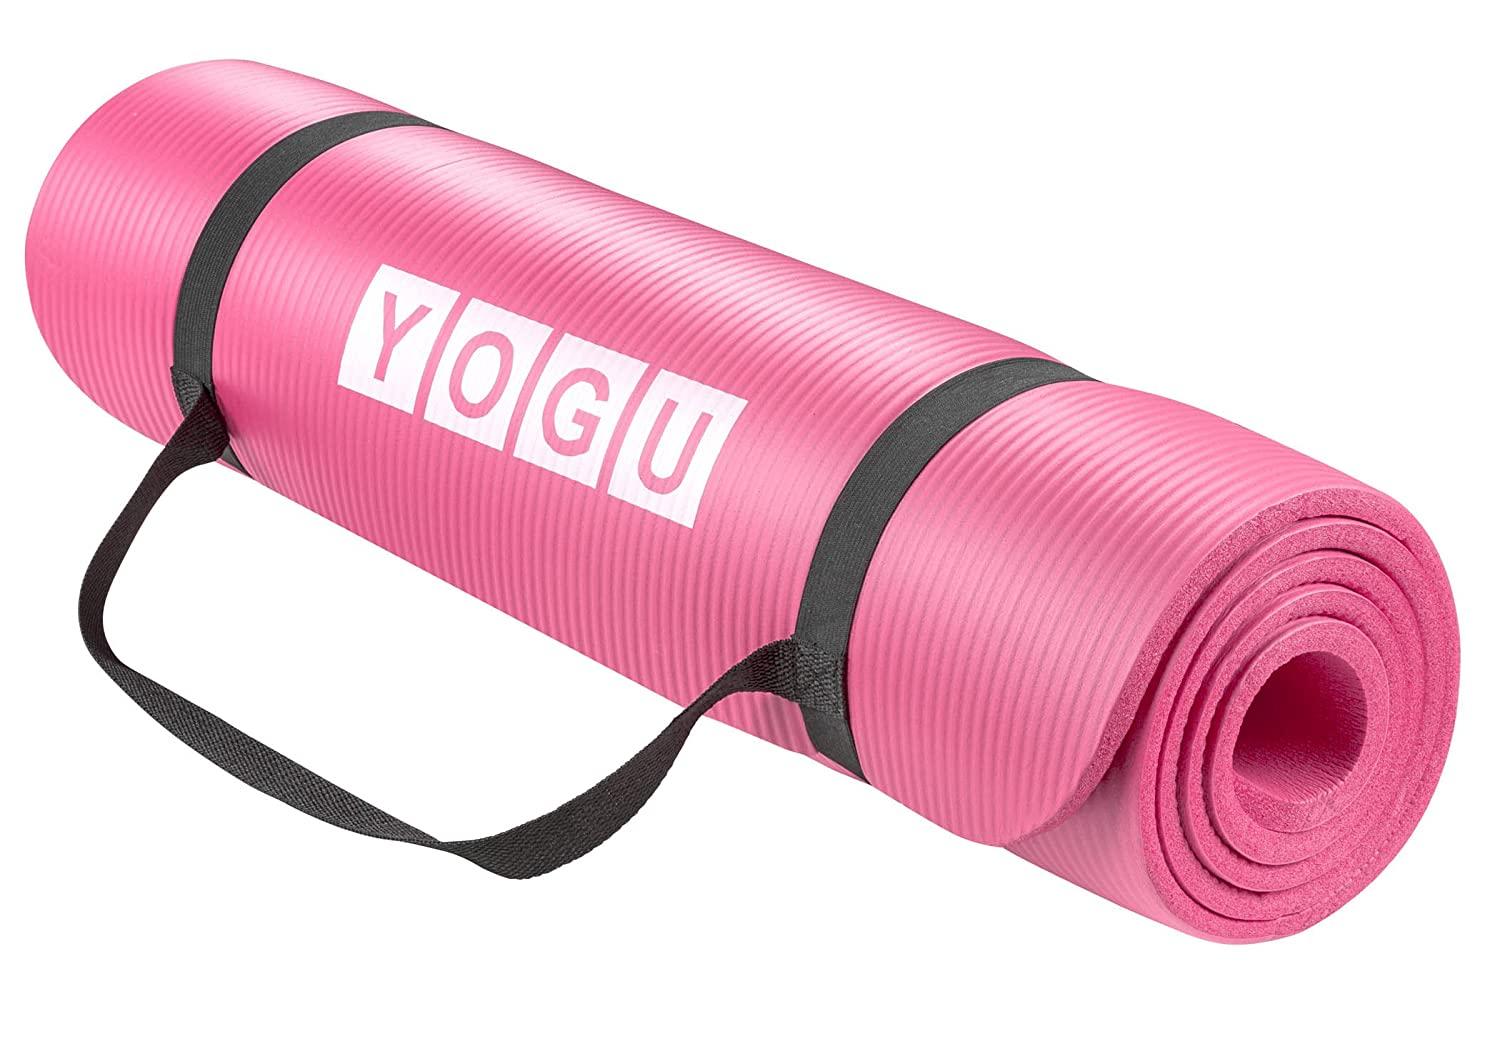 Yoga Mat 1 2 Inch Thick Multi-Purpose Lightweight Pilates Fitness Mats Durable Washable Non-Slip Surfaces Sweat-Proof Gym Workout Exercise Yoga Mat with Carrier Strap – 6 FT x 2 FT